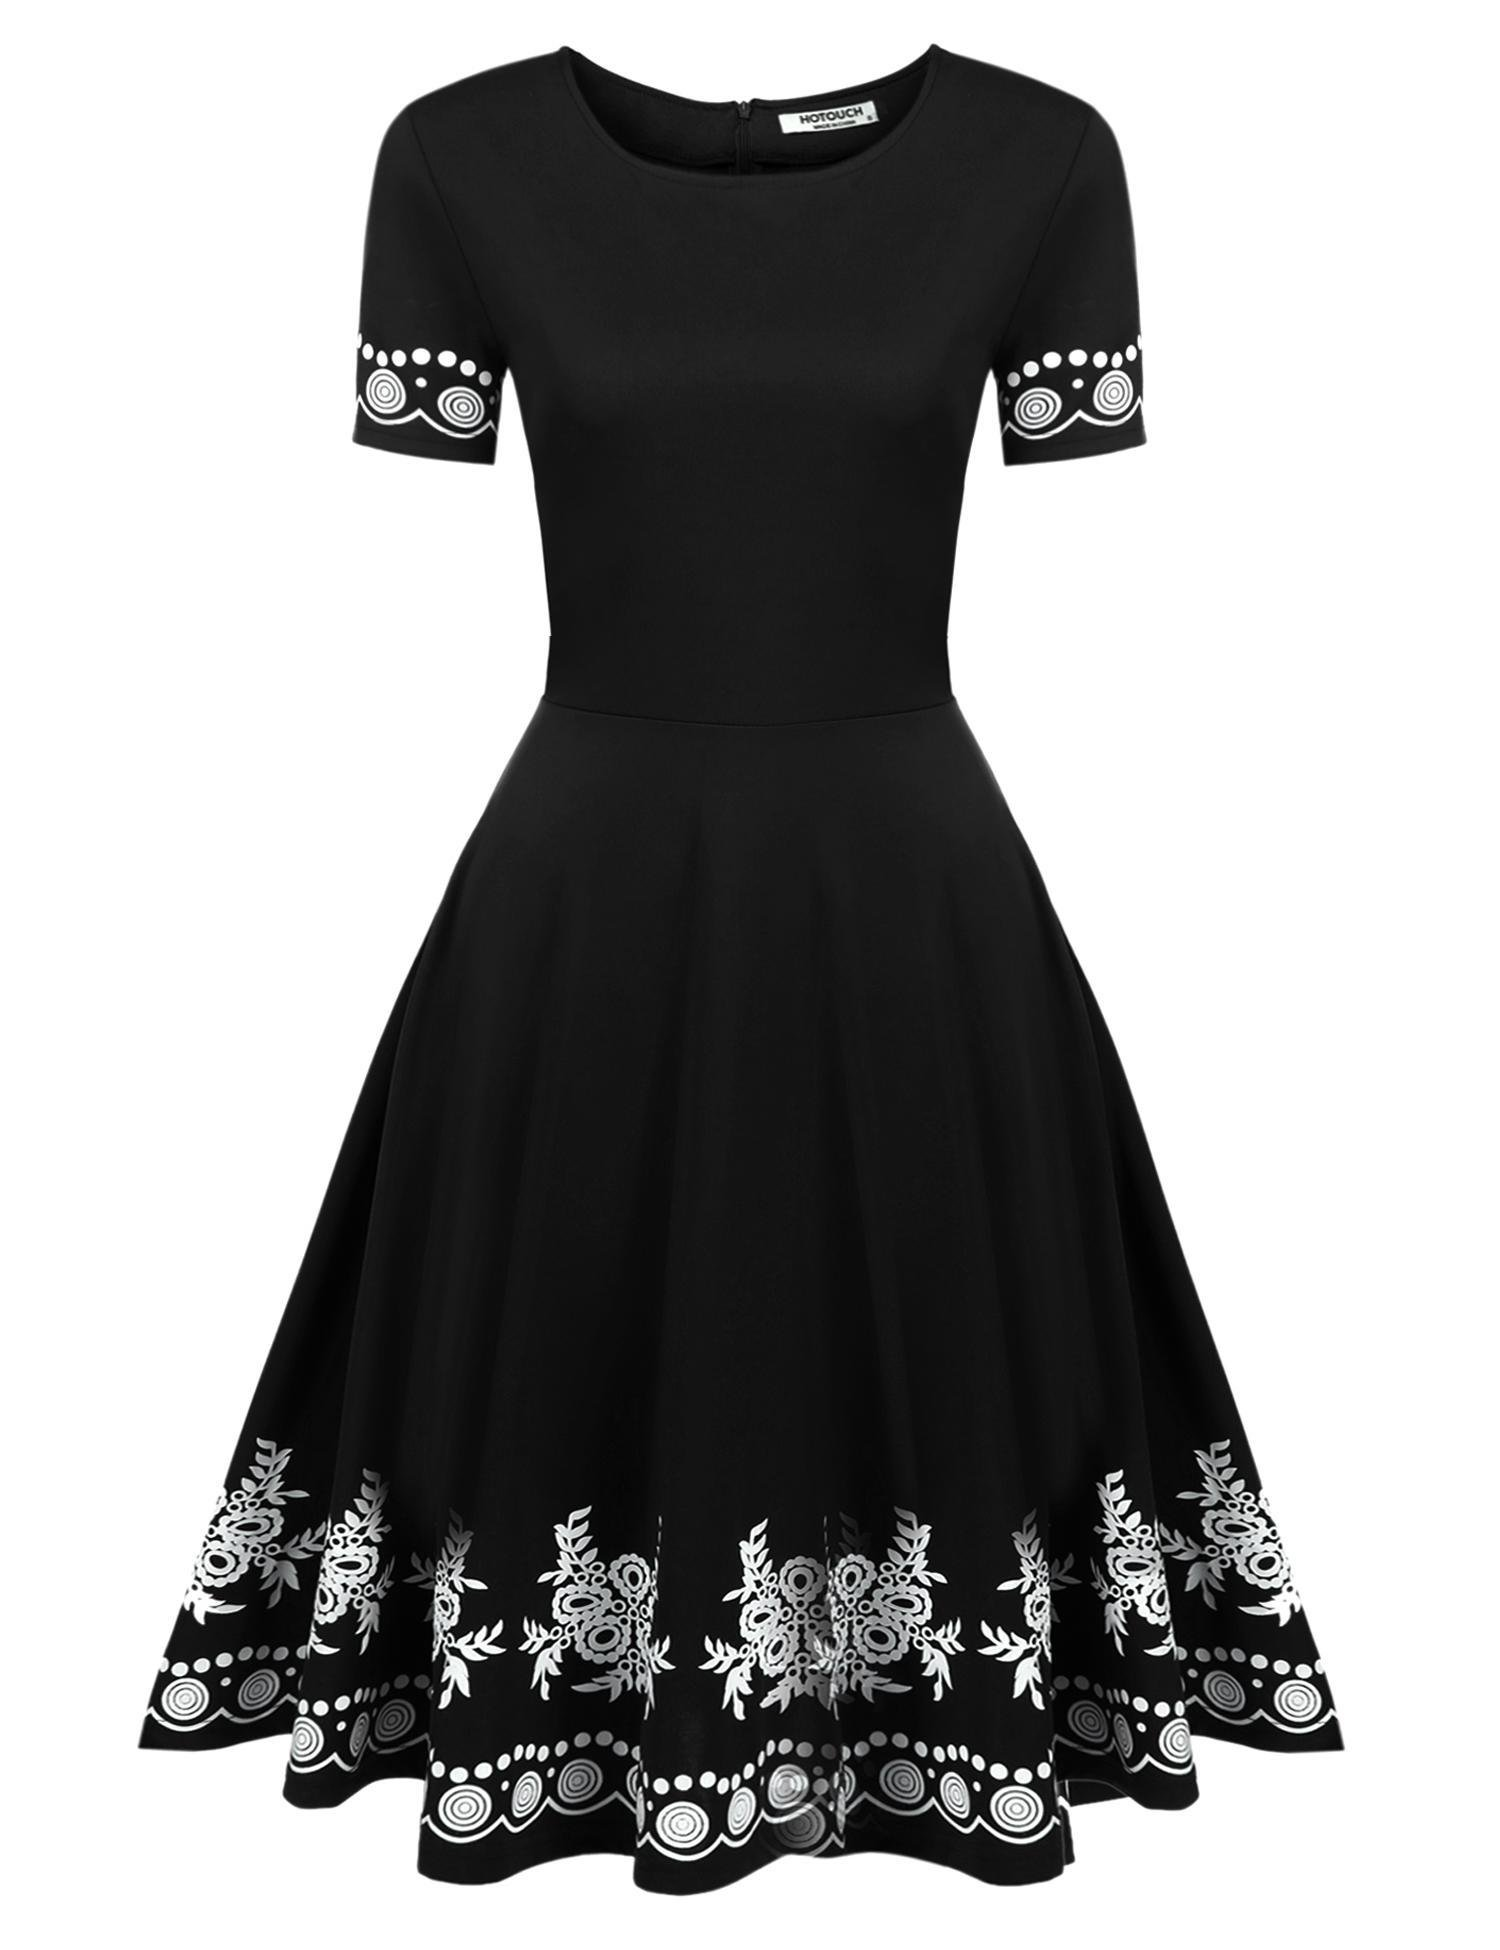 Hotouch Women Embroidered O-Neck Short Sleeve Flare Party Skater Dress(Black, XL)